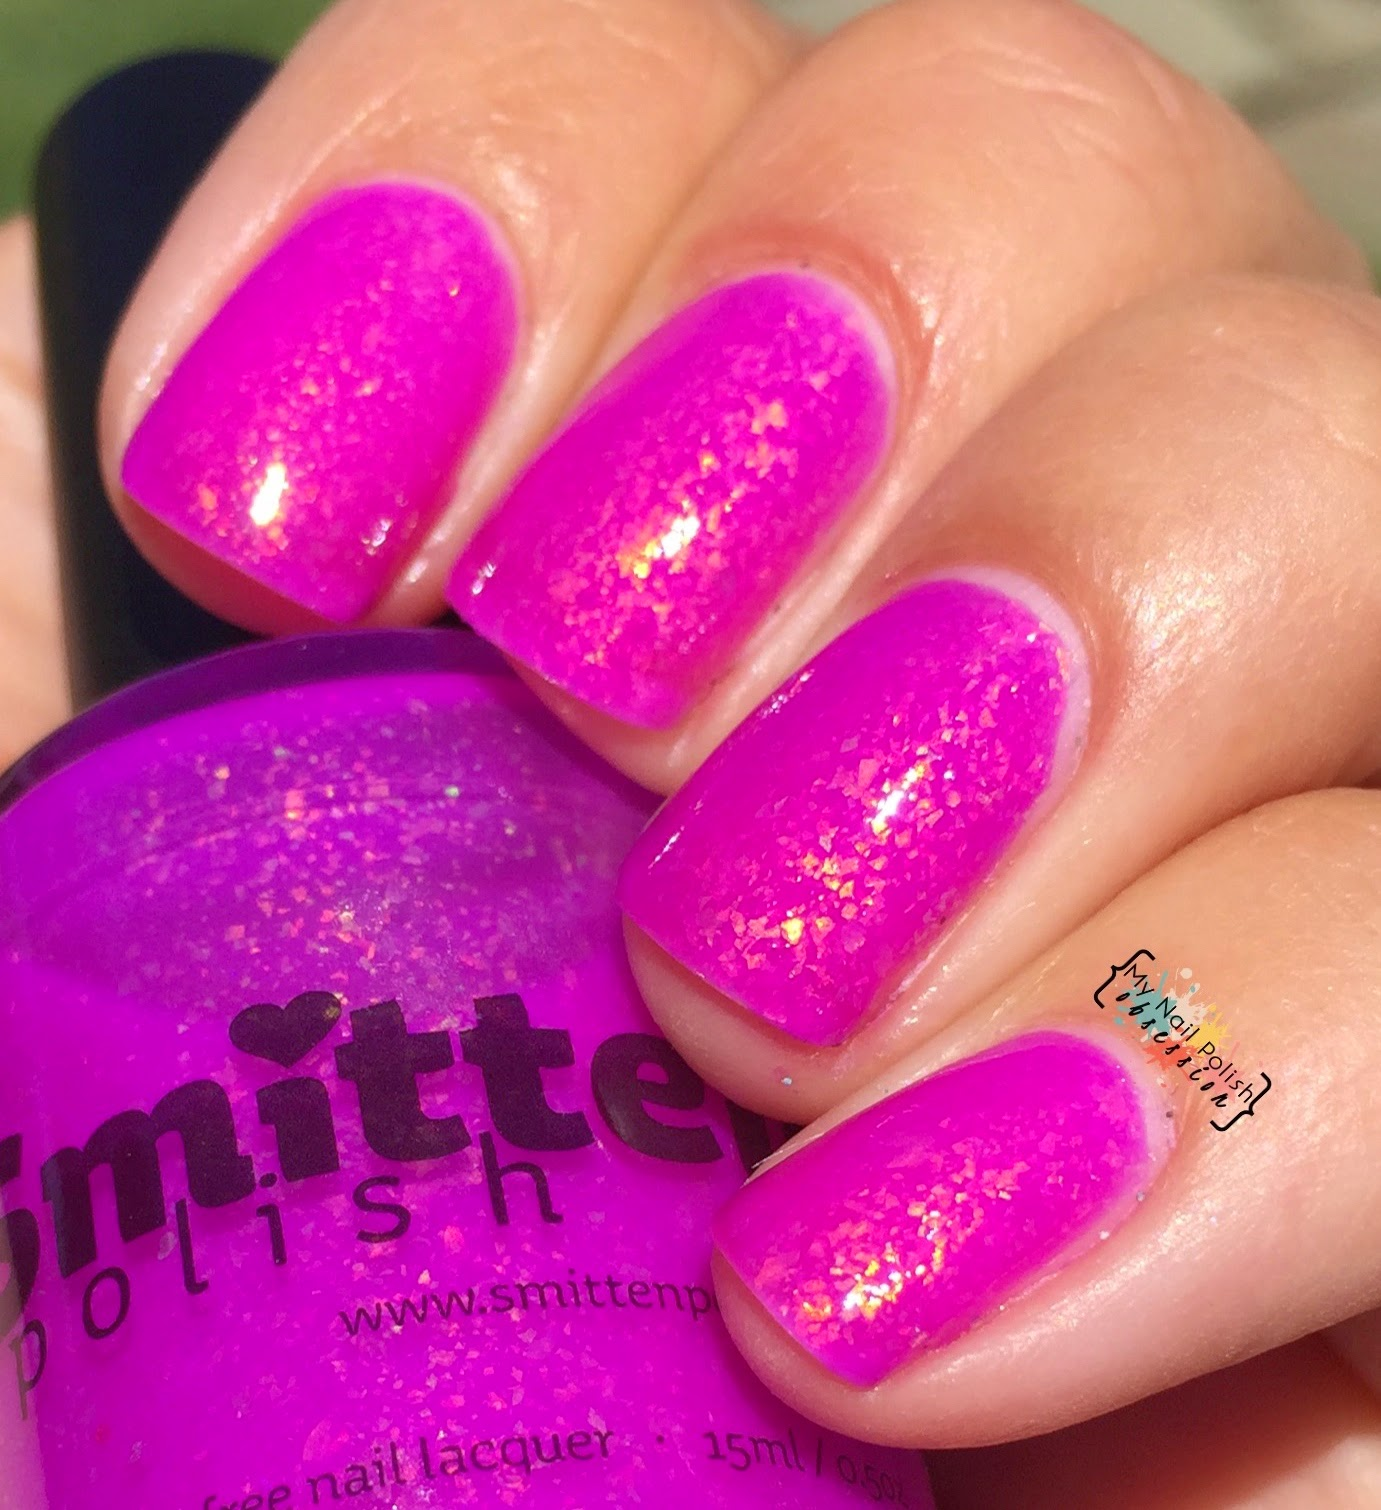 Opalescent Nail Polish: My Nail Polish Obsession: Smitten Polish Opalescent Elements